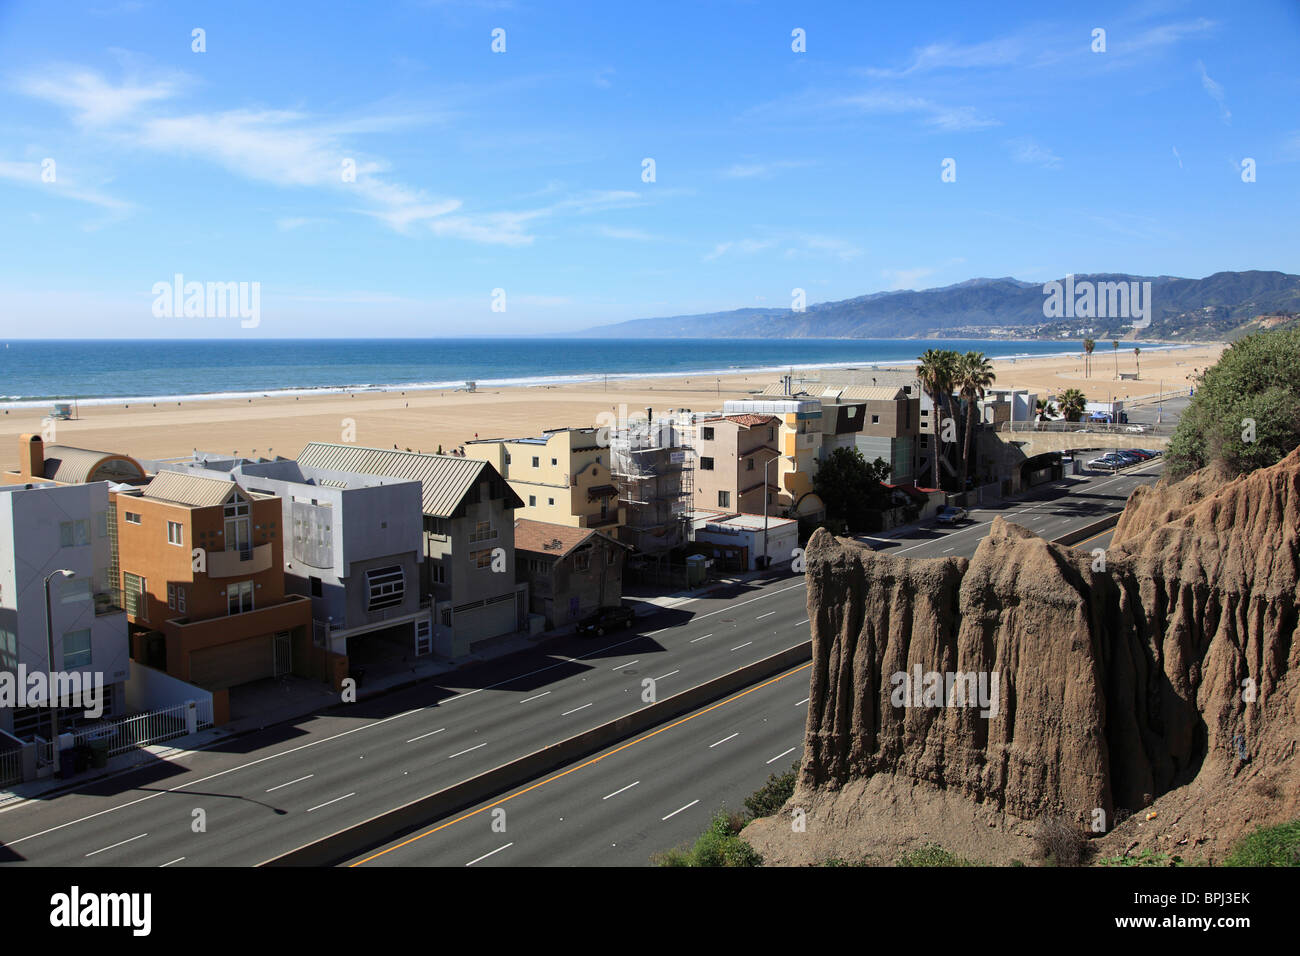 Pacific Coast Highway, Santa Monica, Los Angeles, California, United States of America, North America - Stock Image